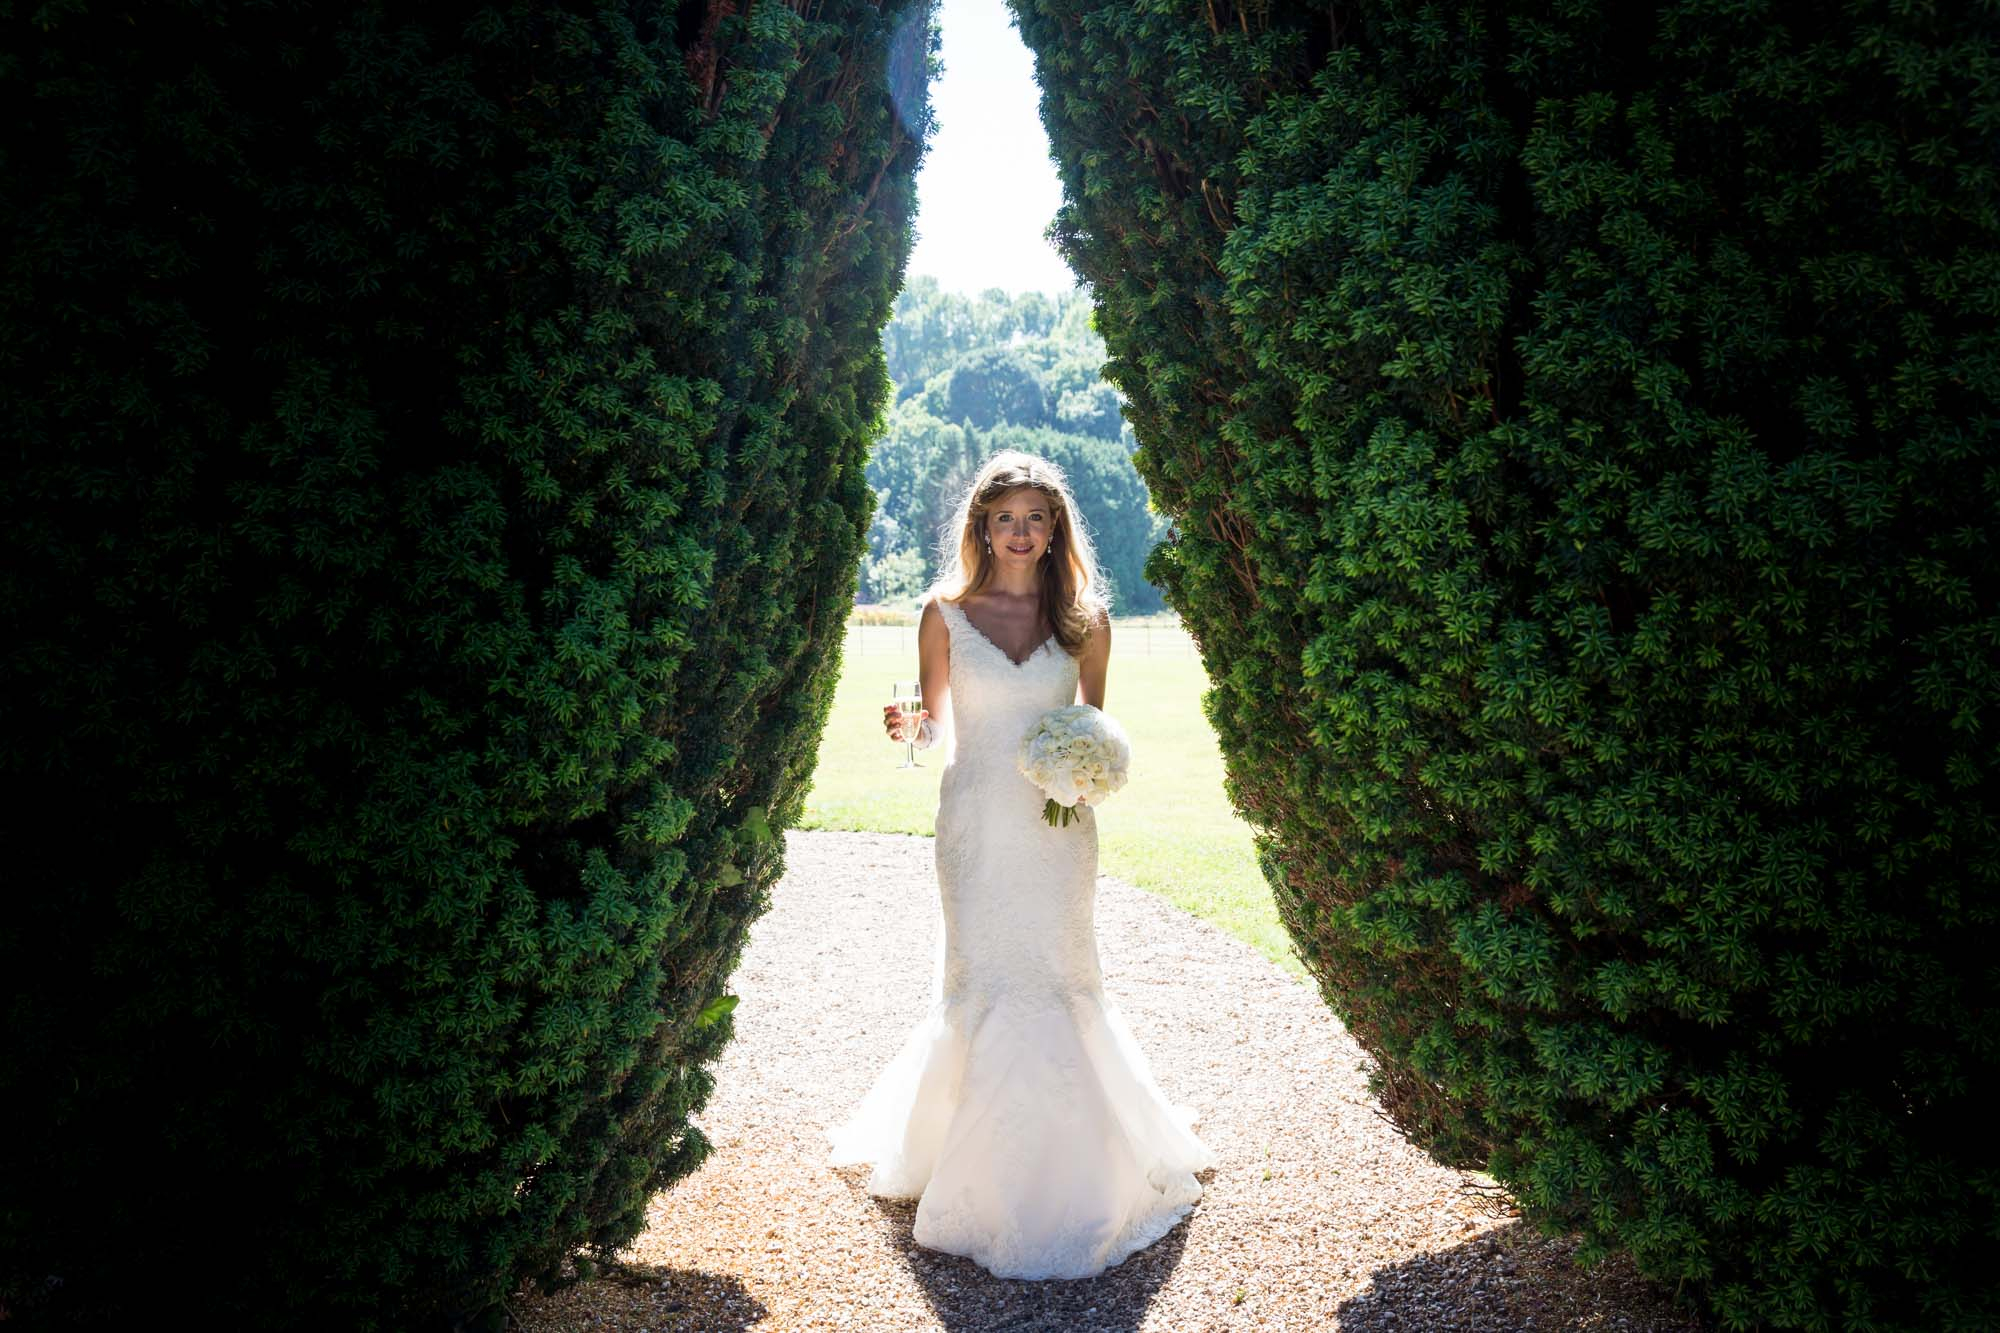 Wedding photography prices - bride at St audries Park